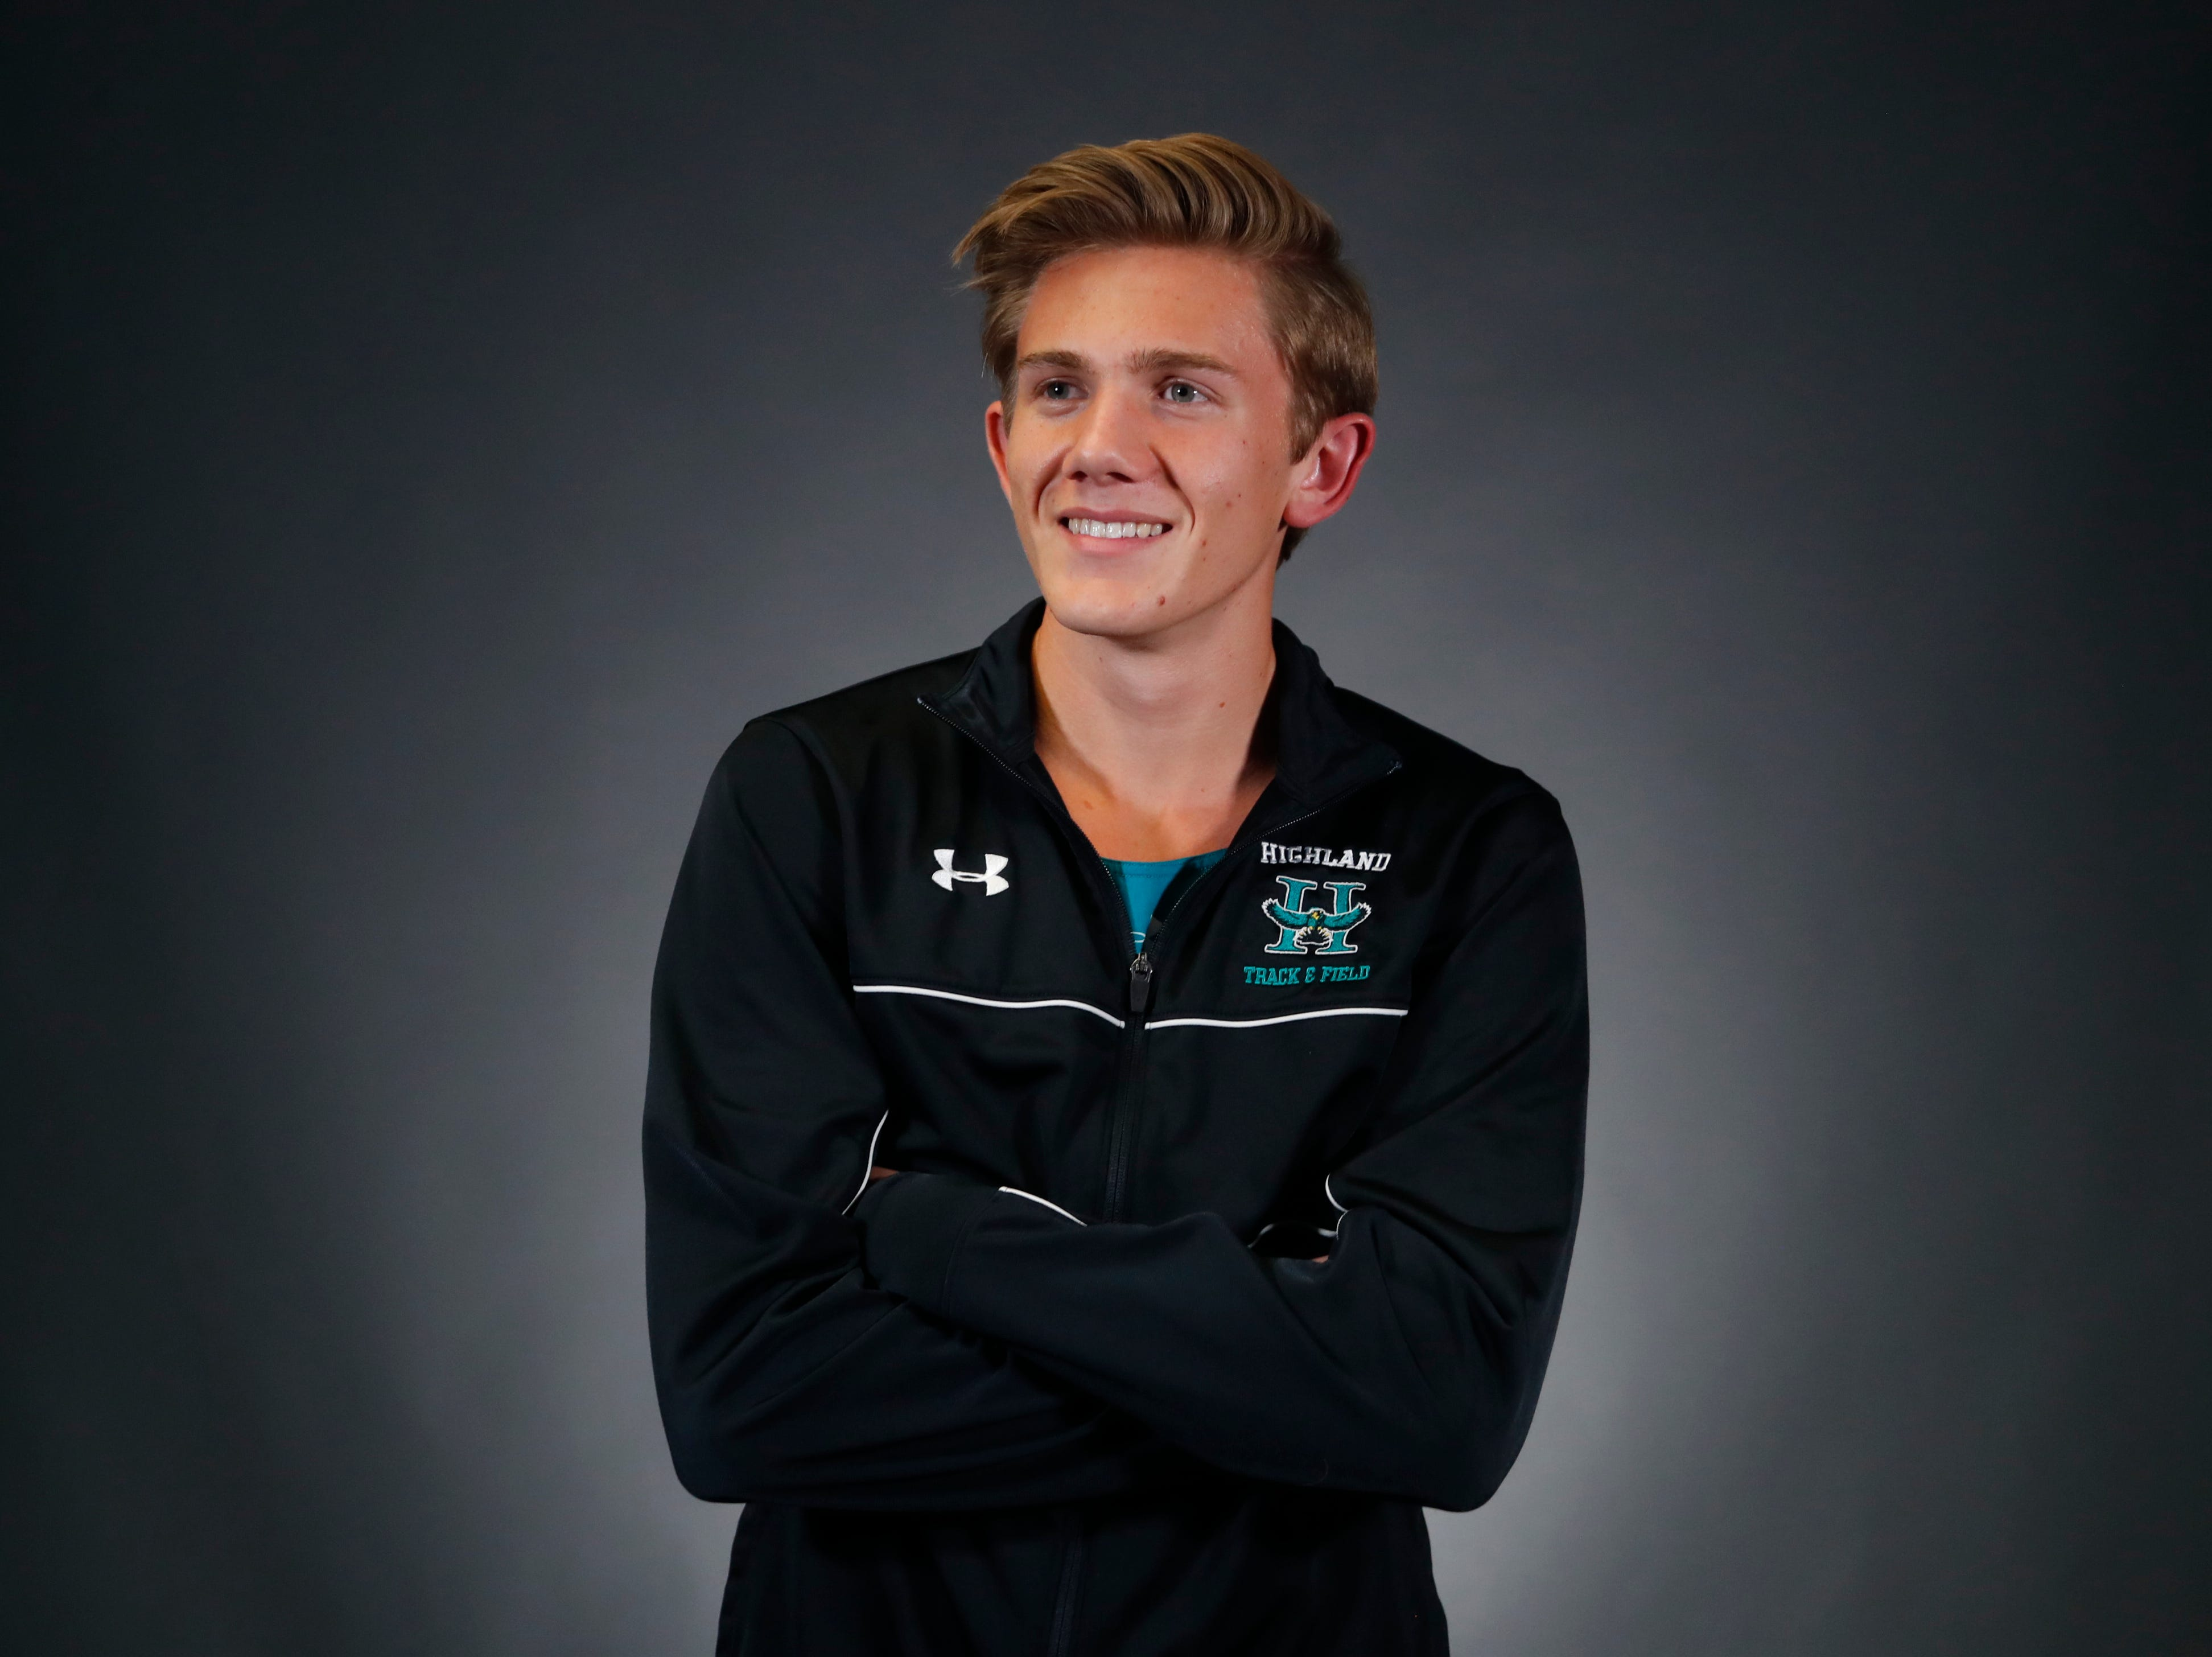 Leo Daschbach from Gilbert Highland is a nominee for azcentral Sports Awards High School Boys Cross Country Runner of the Year. #azcsportsawards